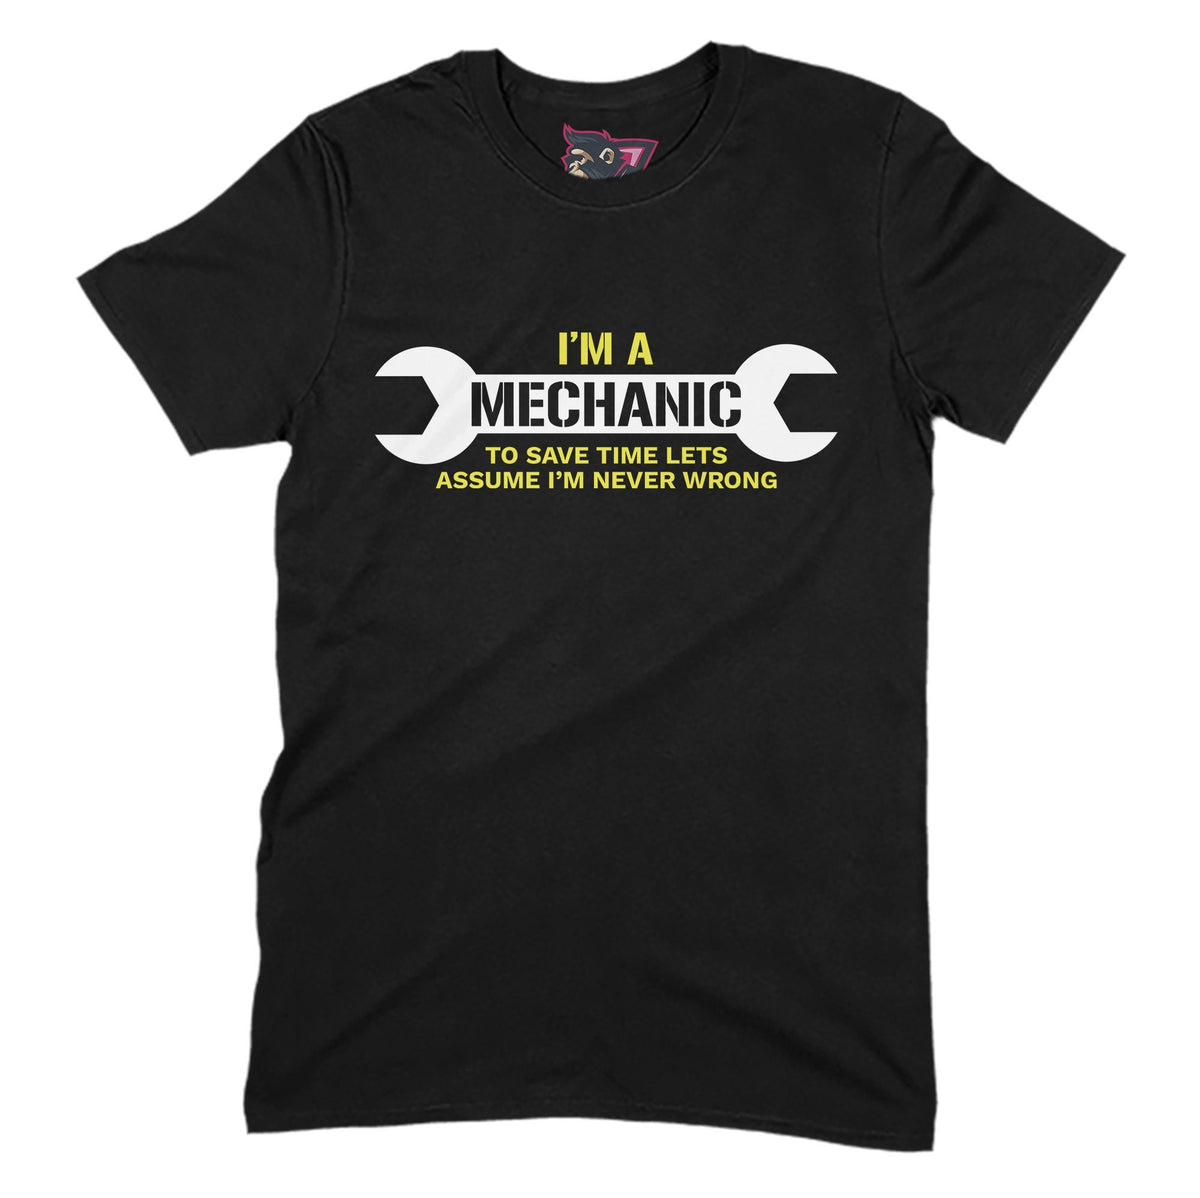 I'm A Mechanic Primate Novelty Unisex T-Shirt Adults: S